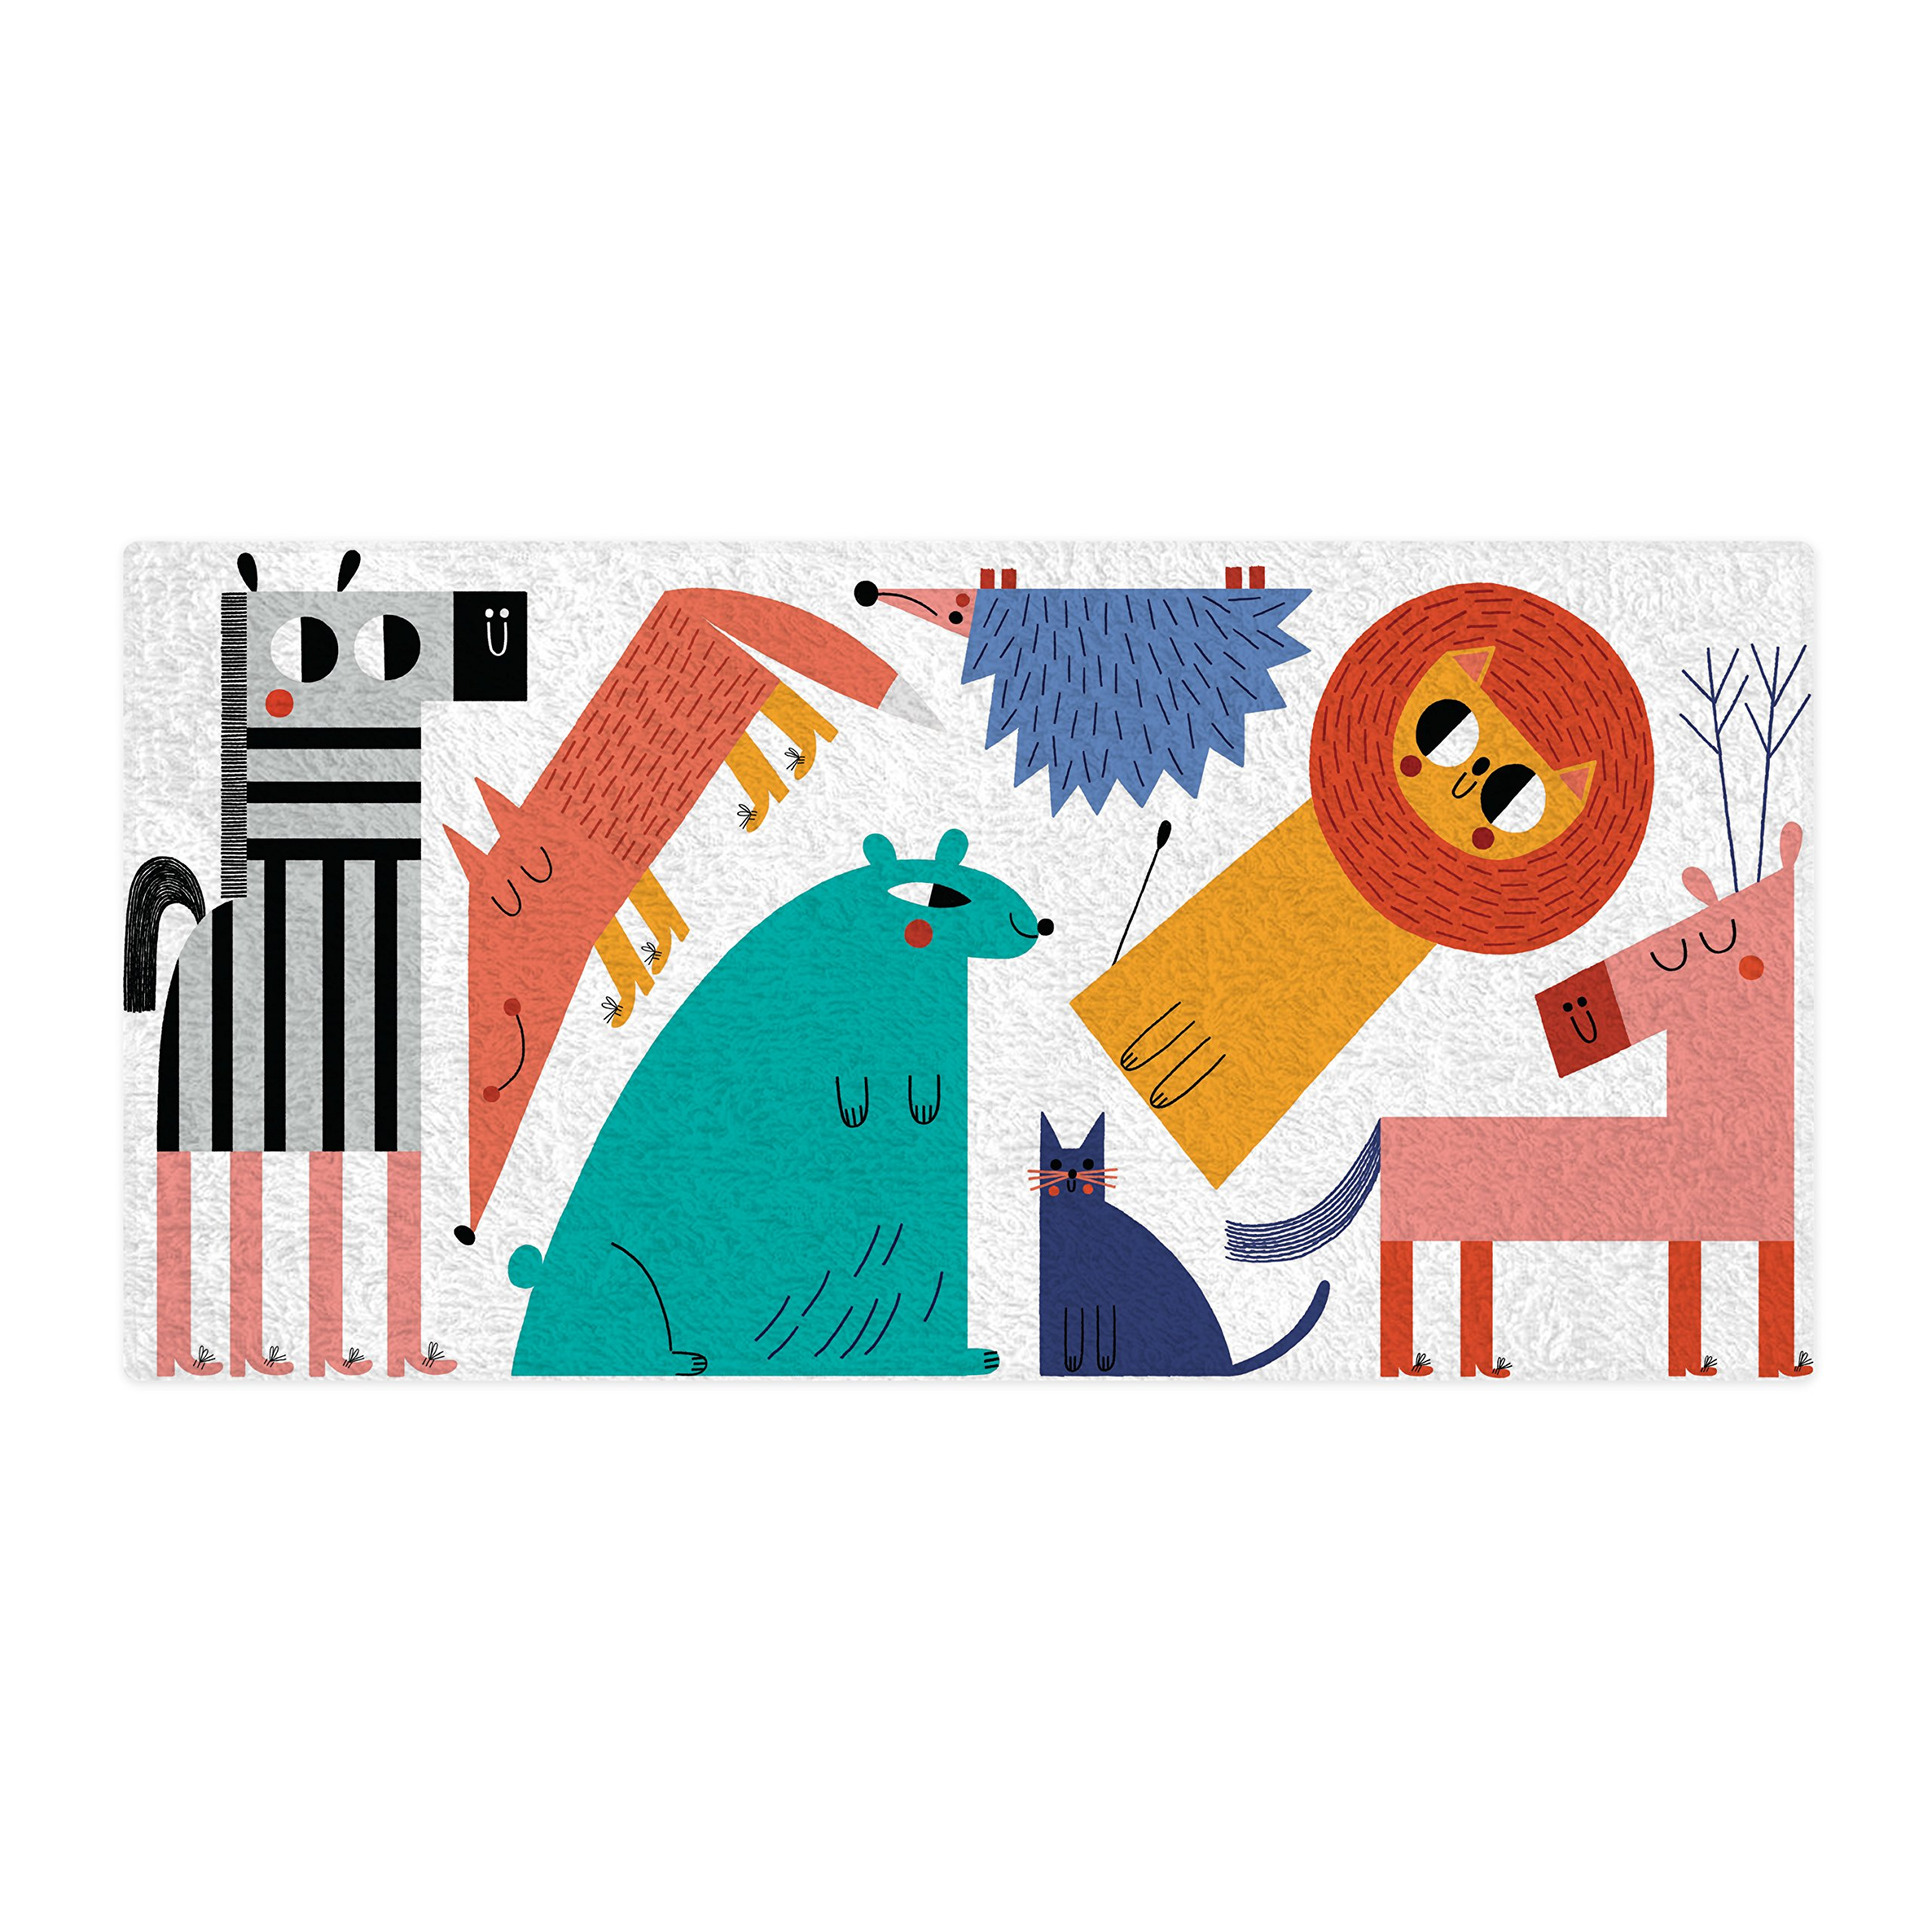 Mouse + Magpie Little Land Animals Bath Towel Premium Quality: Ultra Soft, Cozy and Absorbent, 60x30 for Baby, Toddler & Kids, Use for Bath Time, Beach and Pool, Great Gift